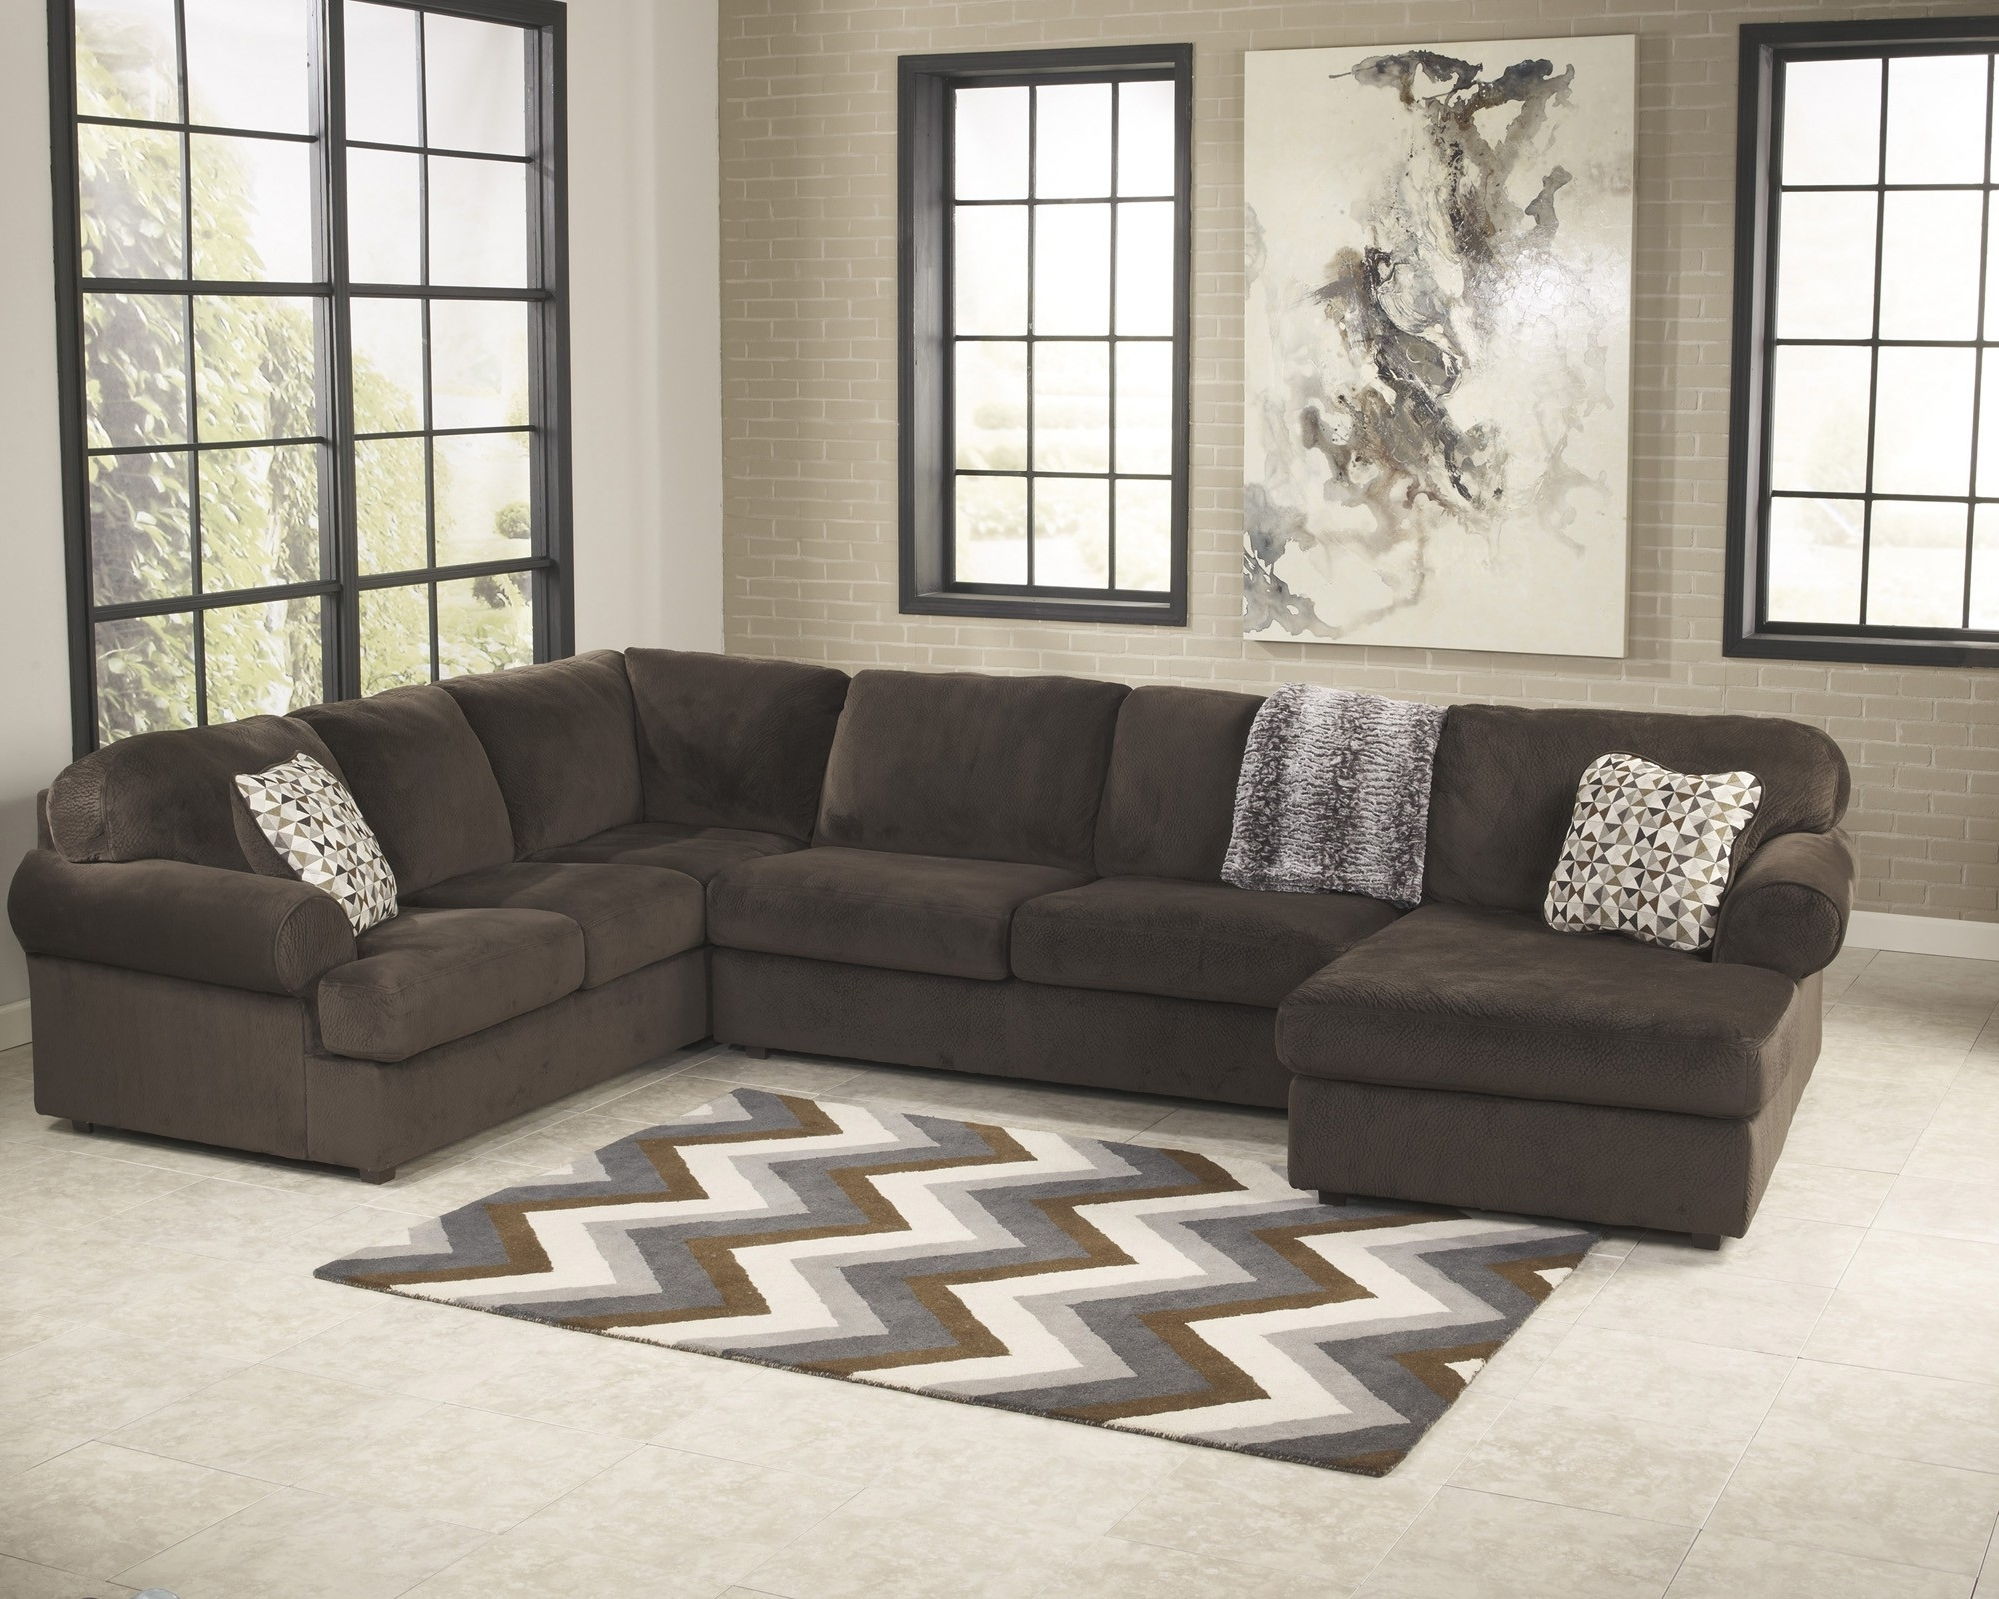 Trendy Greenville Sc Sectional Sofas Intended For Chairs : Jessa Place Chocolate Piece Sectional Sofa For Sofas Sale (View 13 of 15)